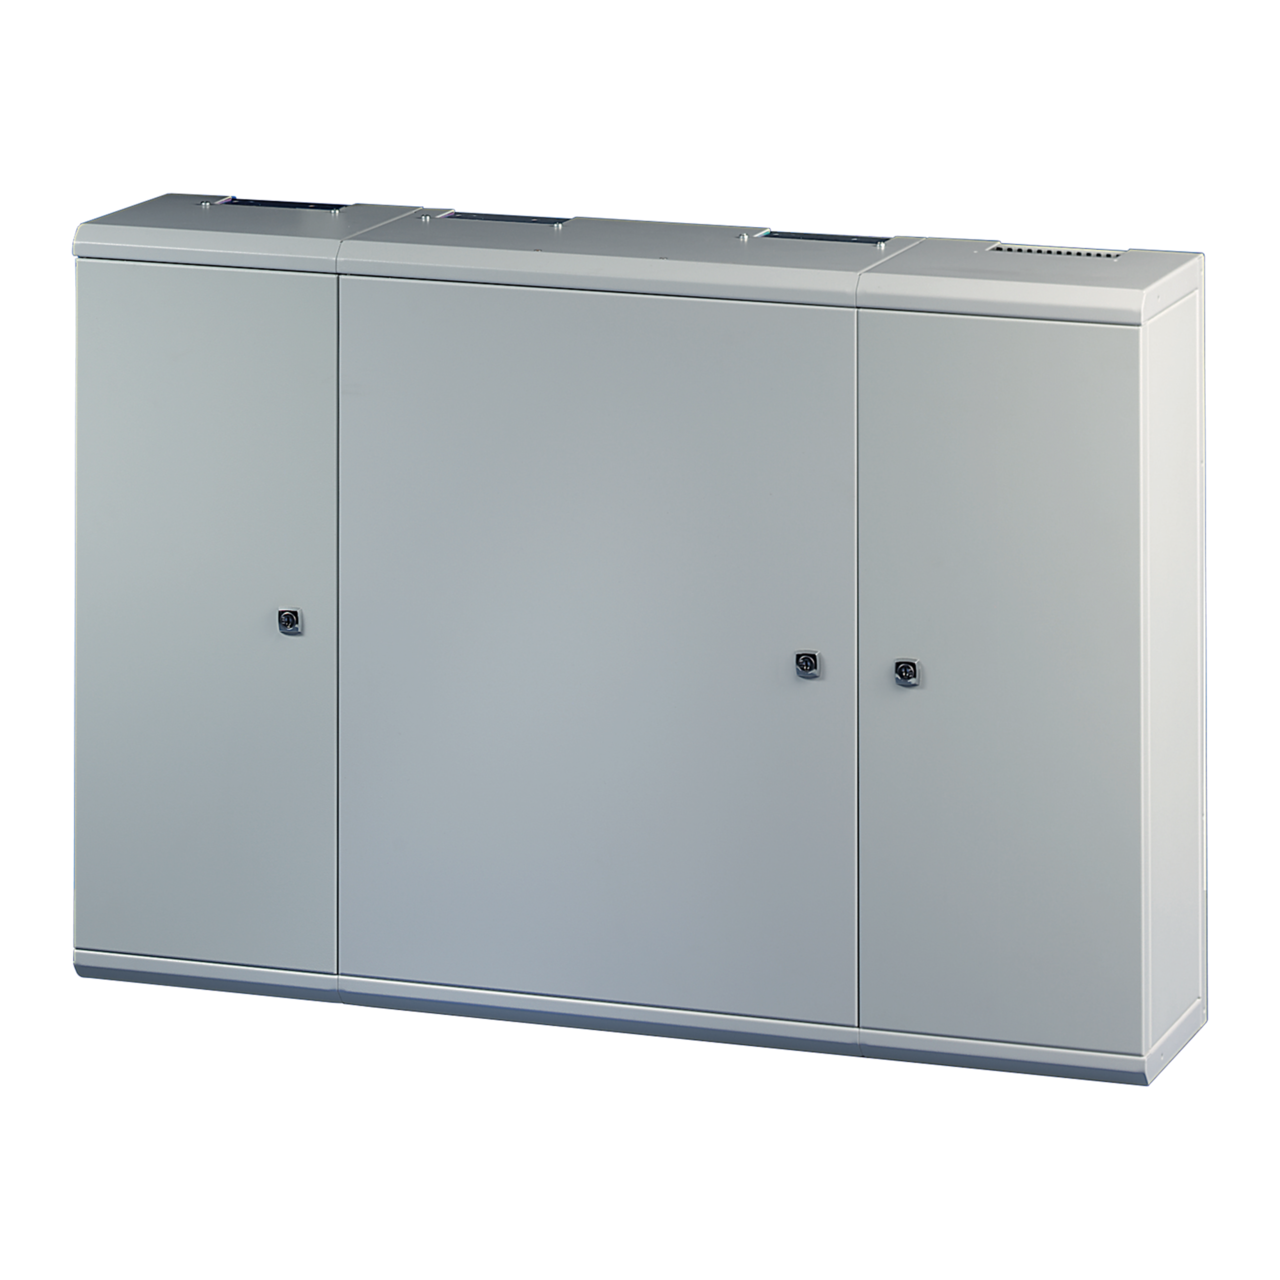 Image for LAN wall-mounted case from Schroff - Asia Pacific